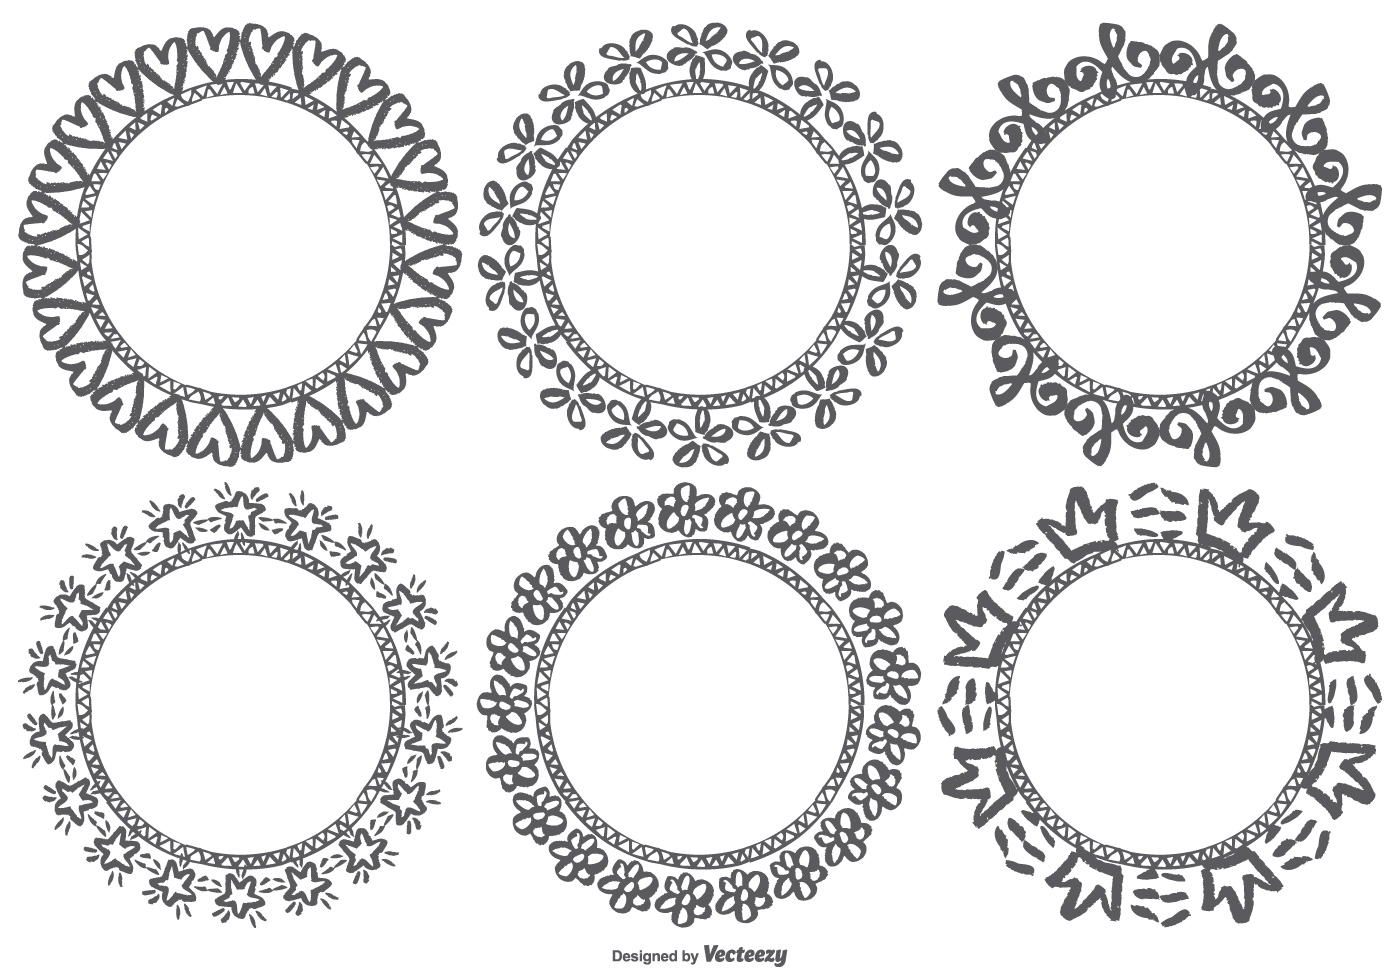 Hand Drawn Doodle Frames - Download Free Vector Art, Stock ...